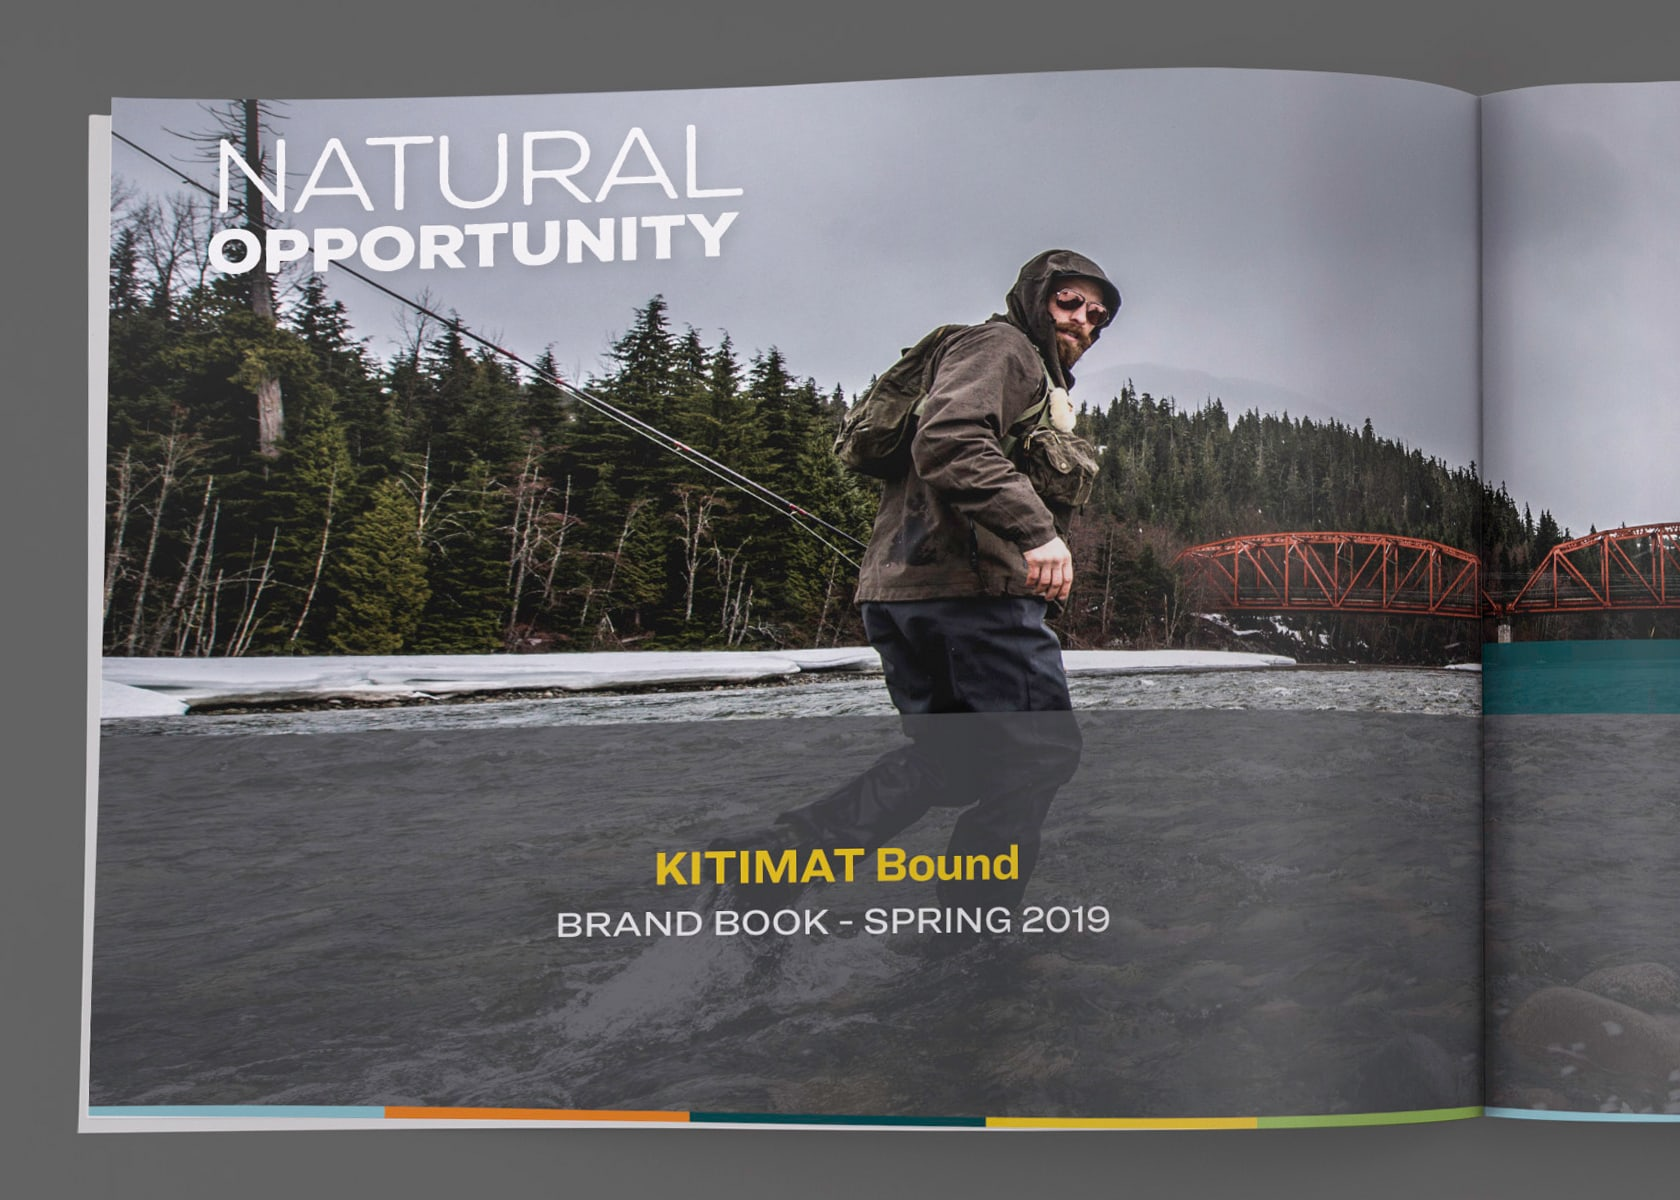 District of Kitimat - Kitimat Bound branding brand book opening spread